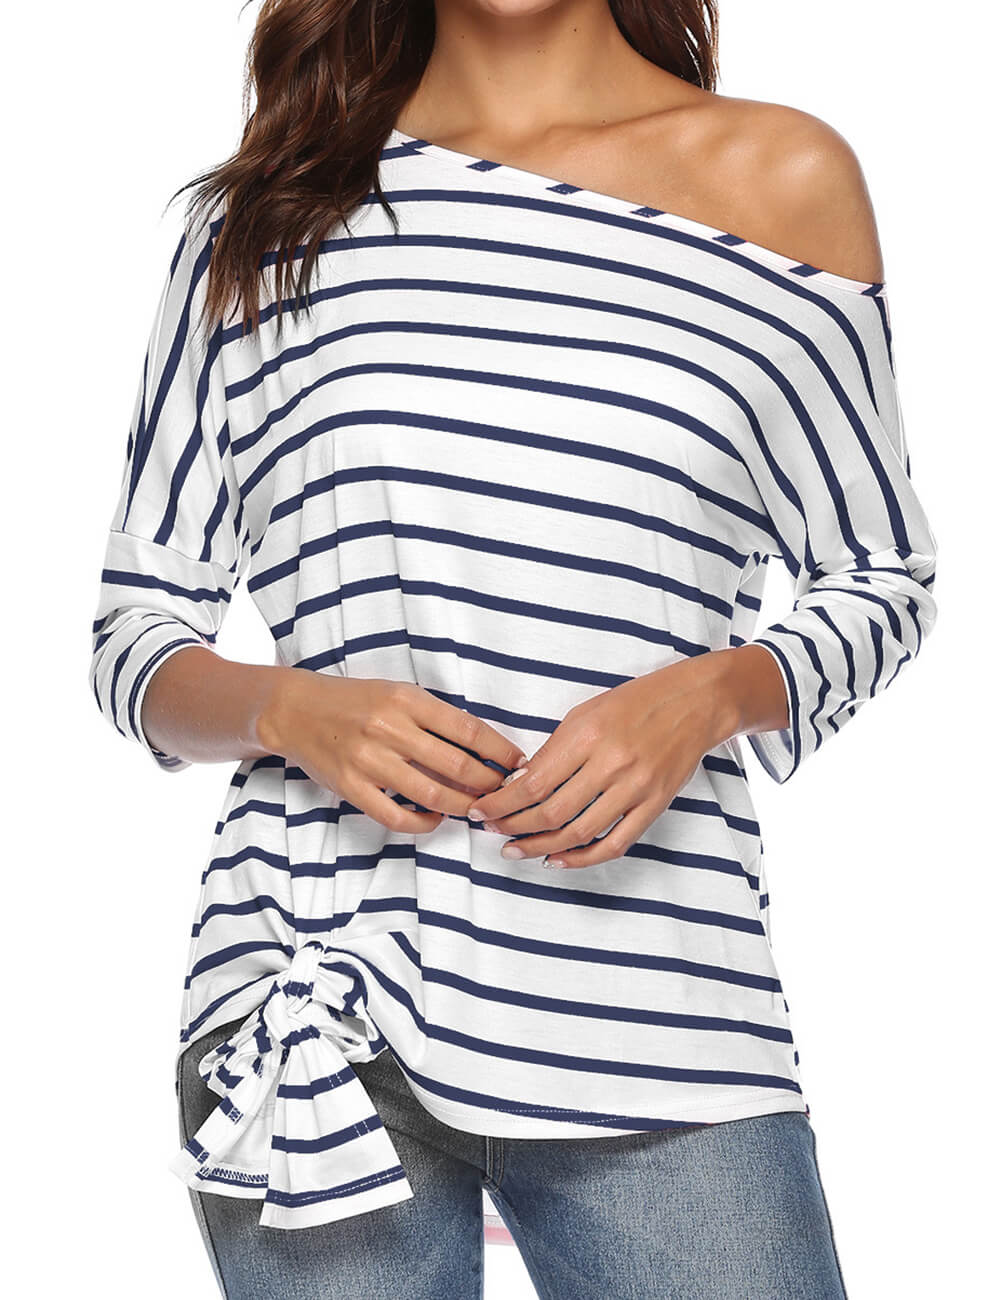 Women's Casual One Shoulder Tops 3/4 Sleeve Tie Front Knot Off Shoulder Loose Blouse Striped Shirts Tunic Tees